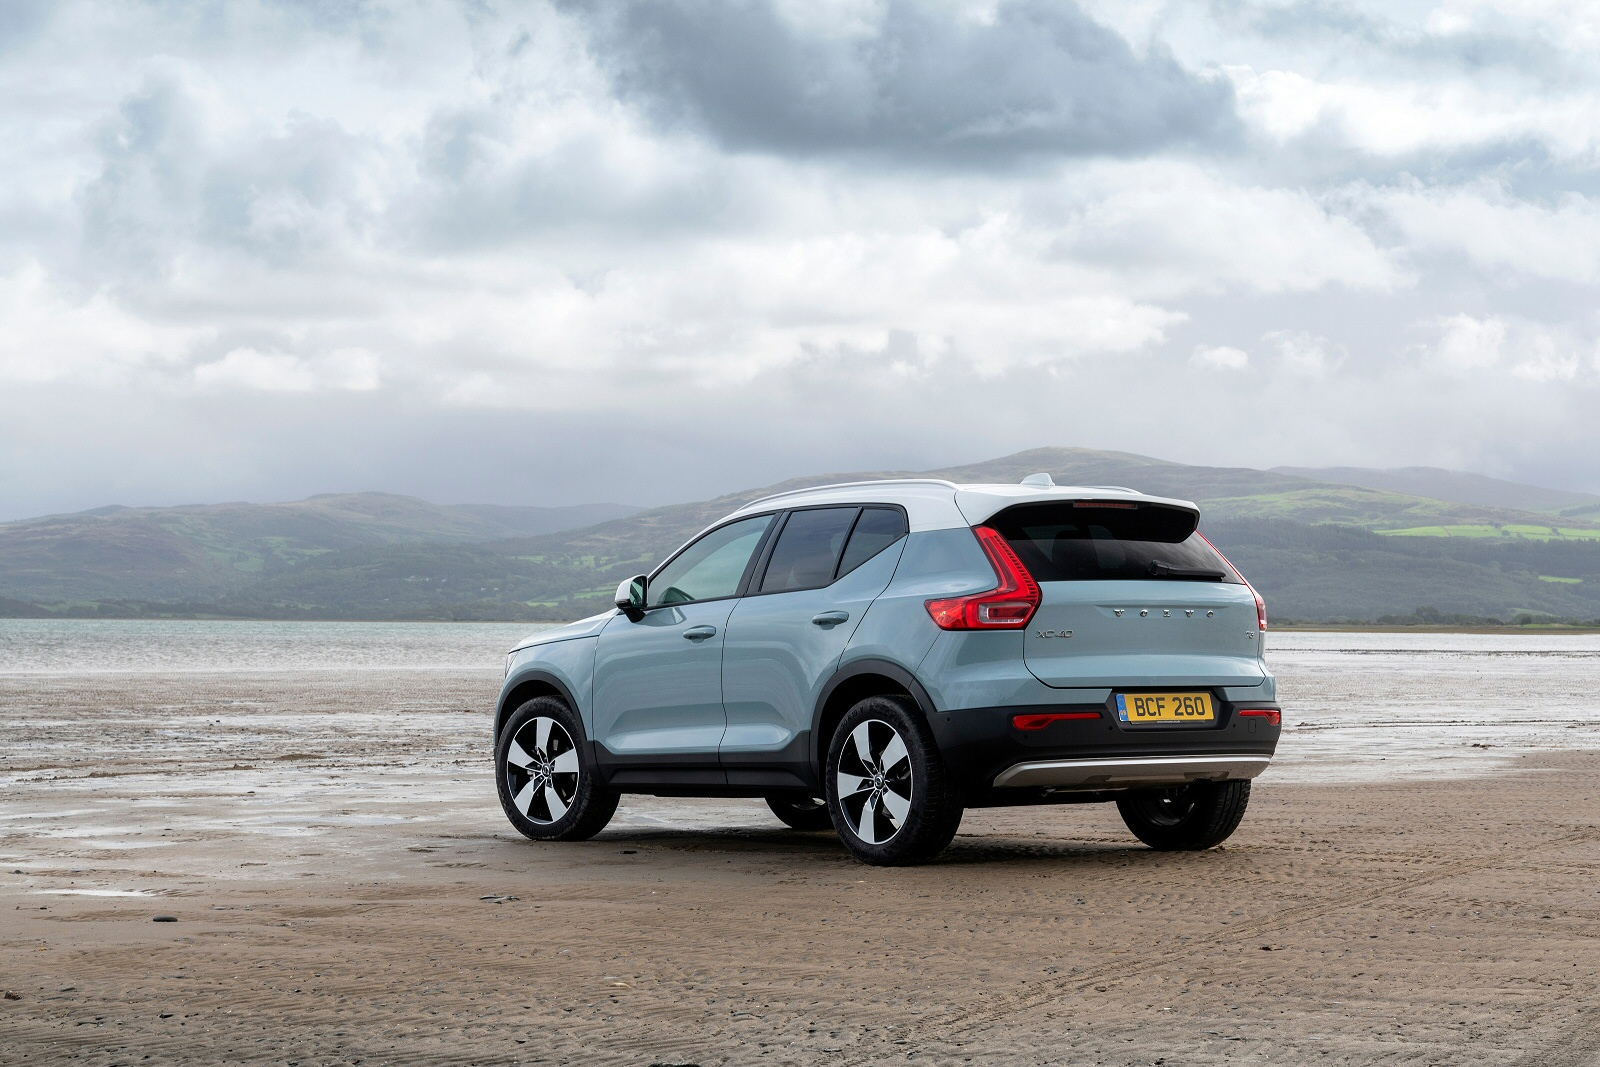 new volvo xc40 2 0 d3 momentum 5dr awd geartronic diesel estate for sale bristol street. Black Bedroom Furniture Sets. Home Design Ideas